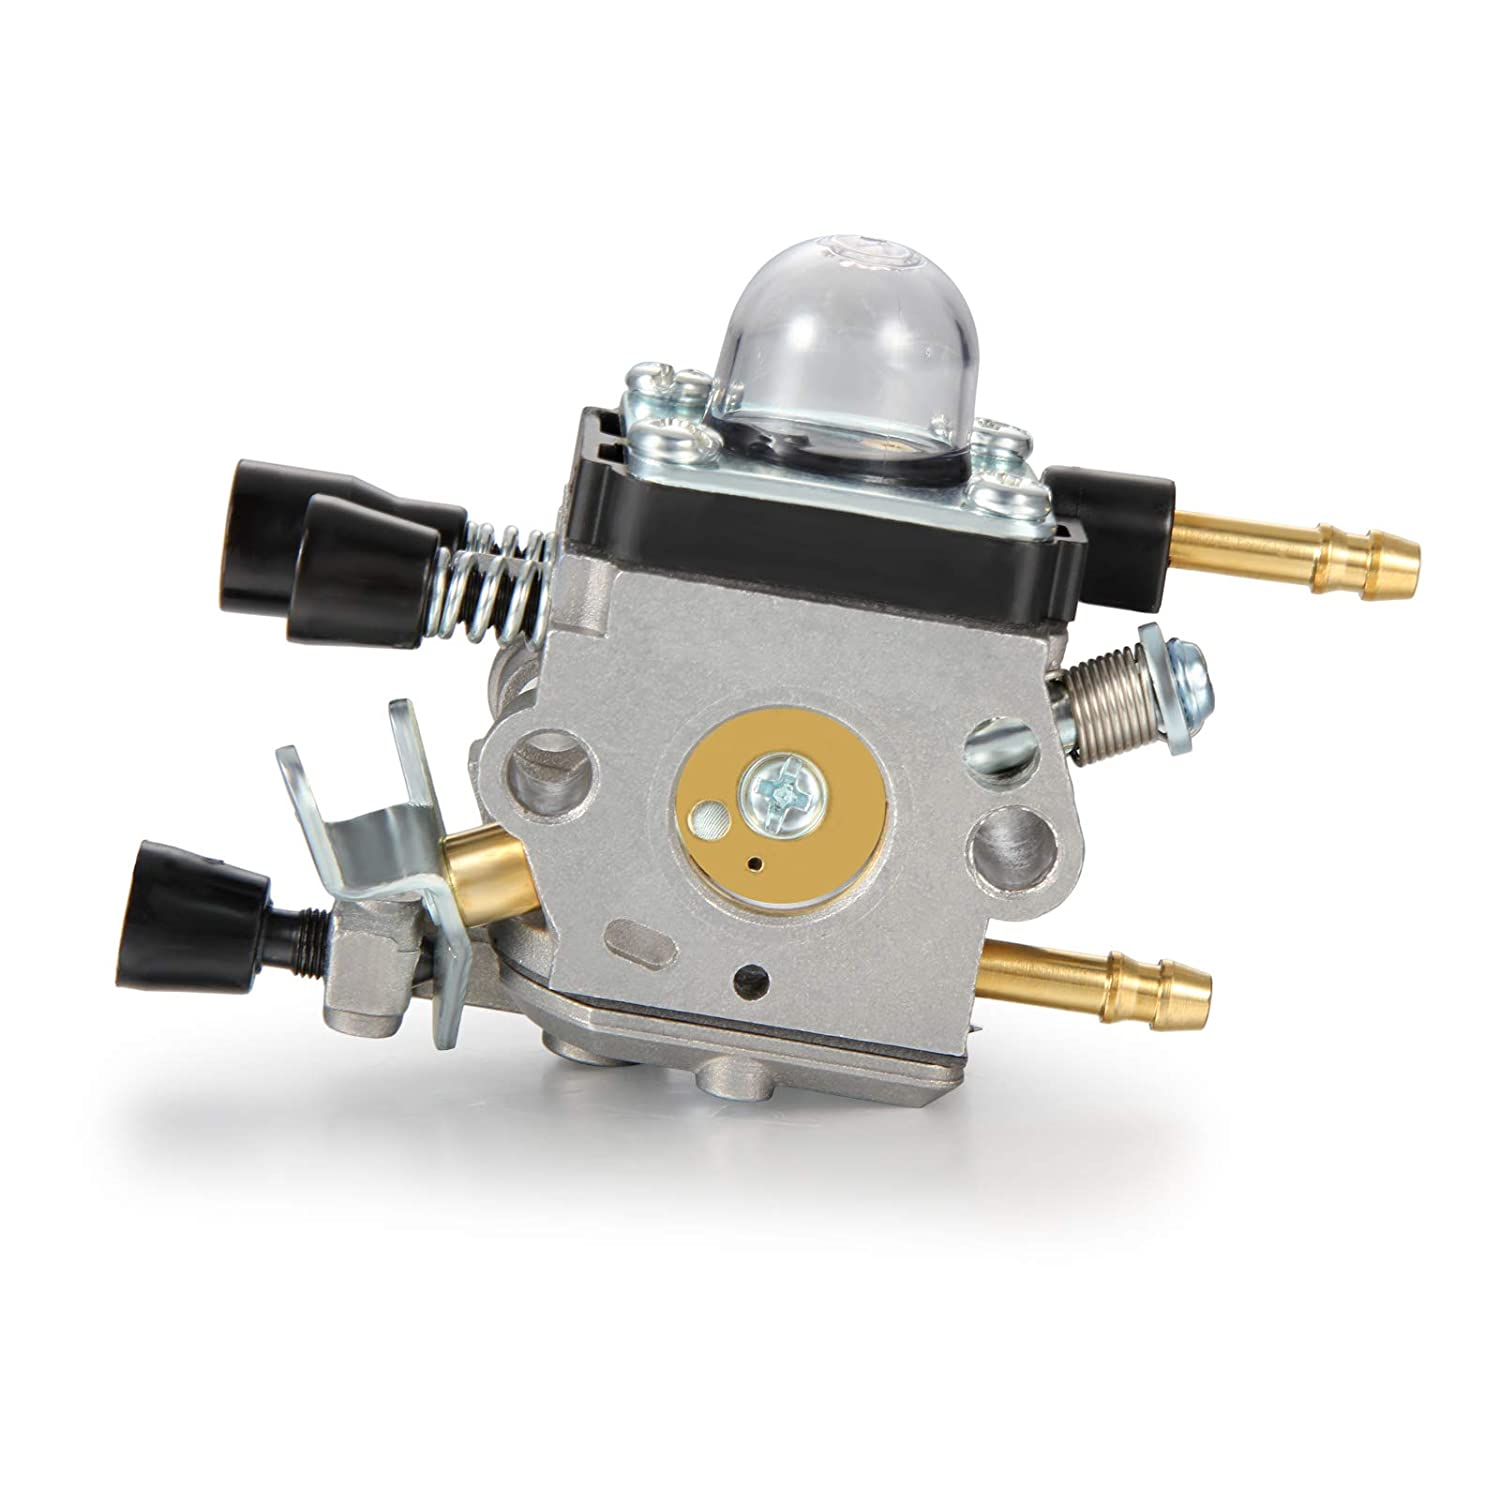 Madlife Garage Carburetor 42291200606 C1Q-S68 For Stihl BG45 BG46 BG55 BG65 BG85 SH55 SH85